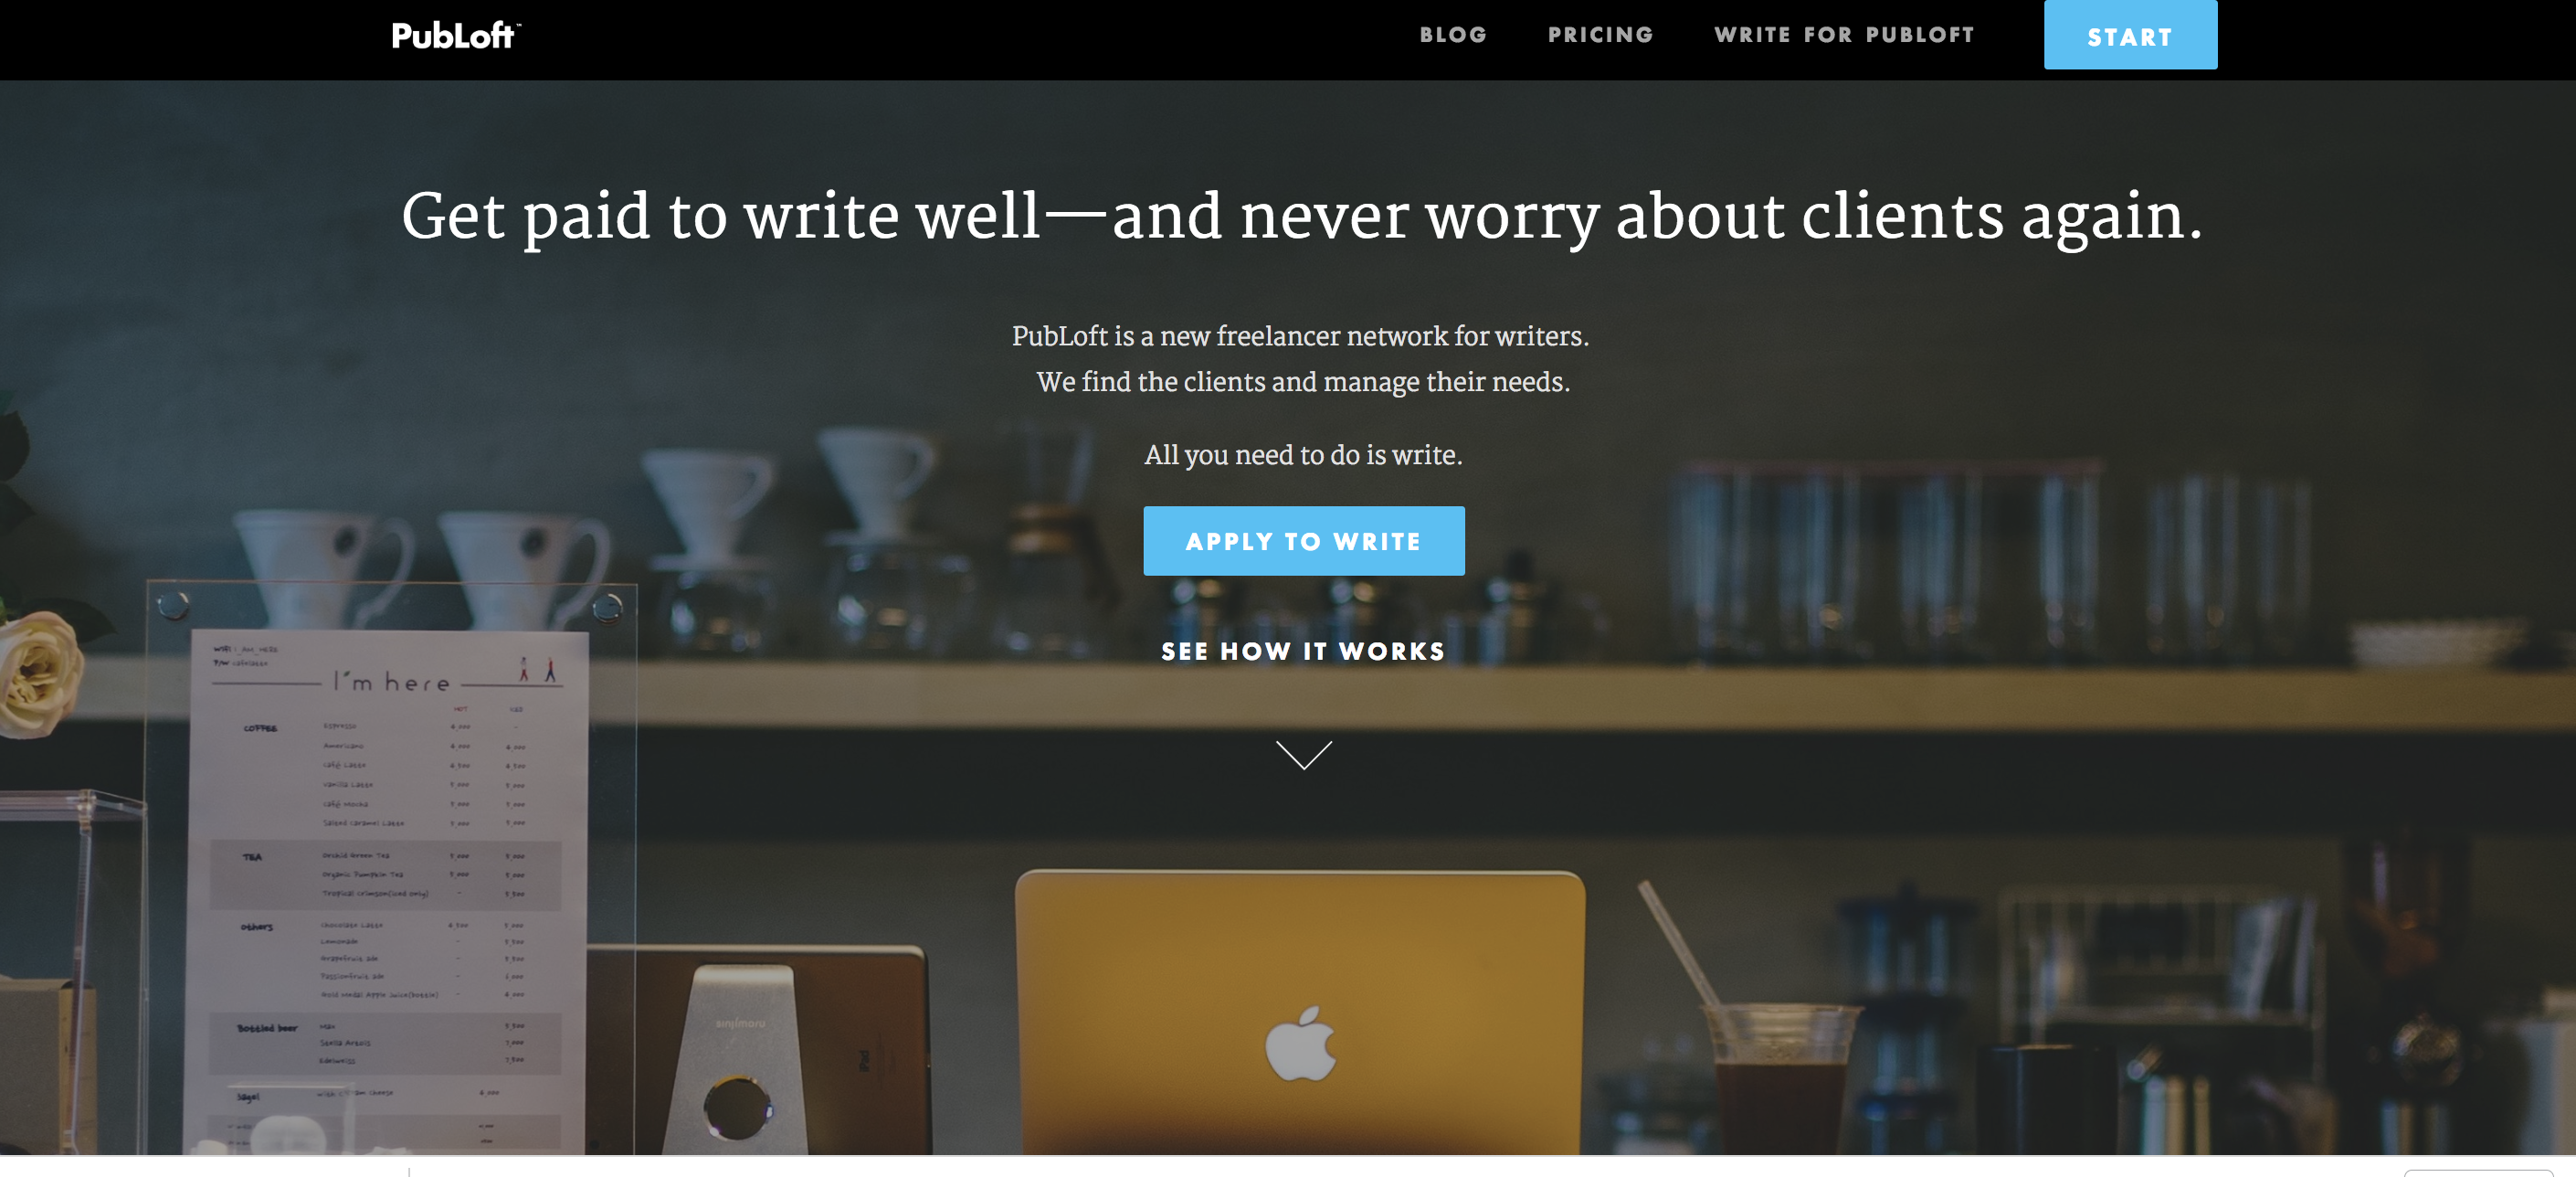 The best FreeLoft freelance sites for writers